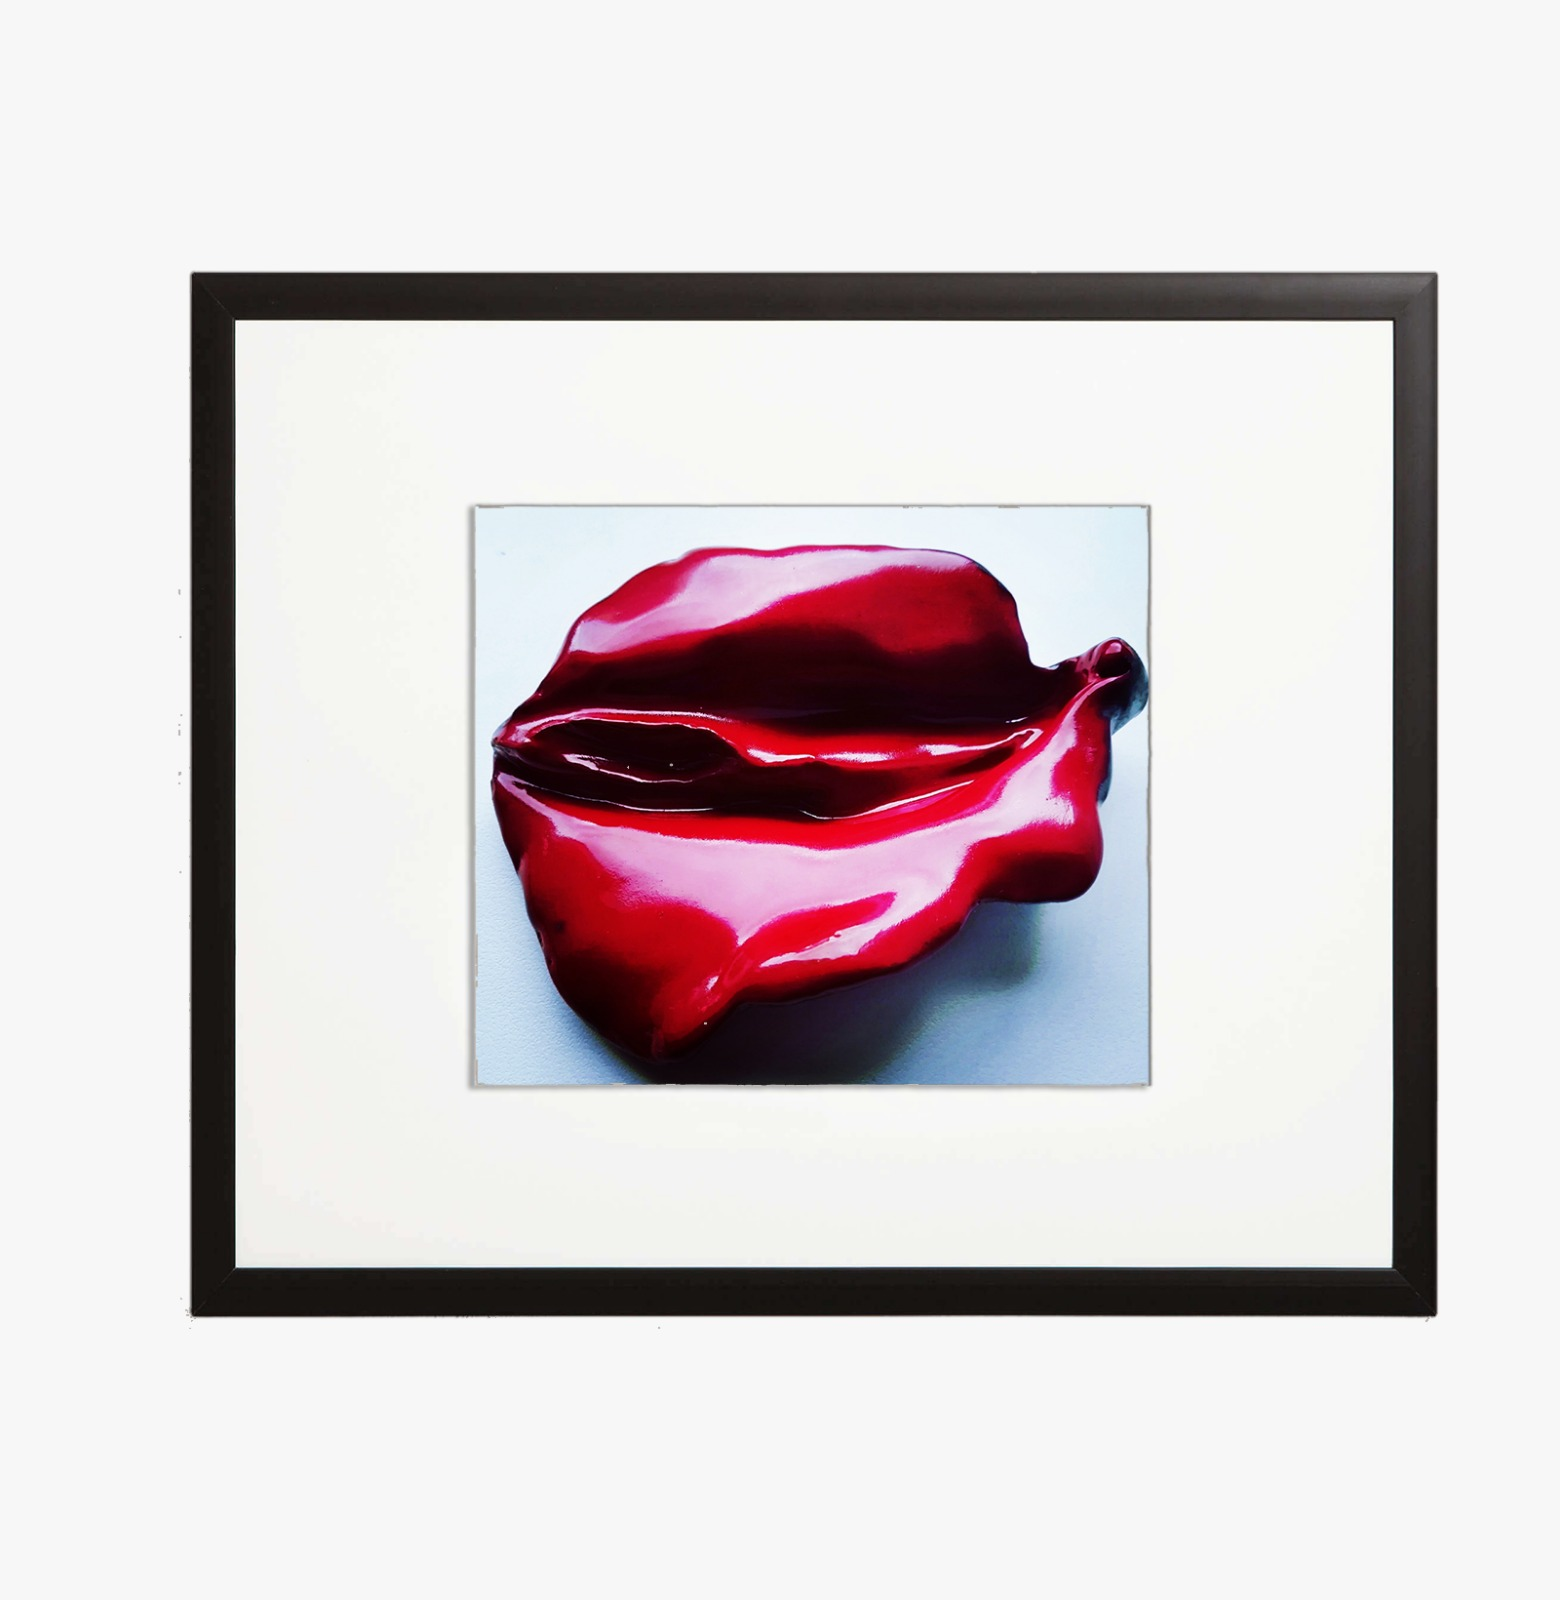 Sculpture Red Velvet Vulva 7320